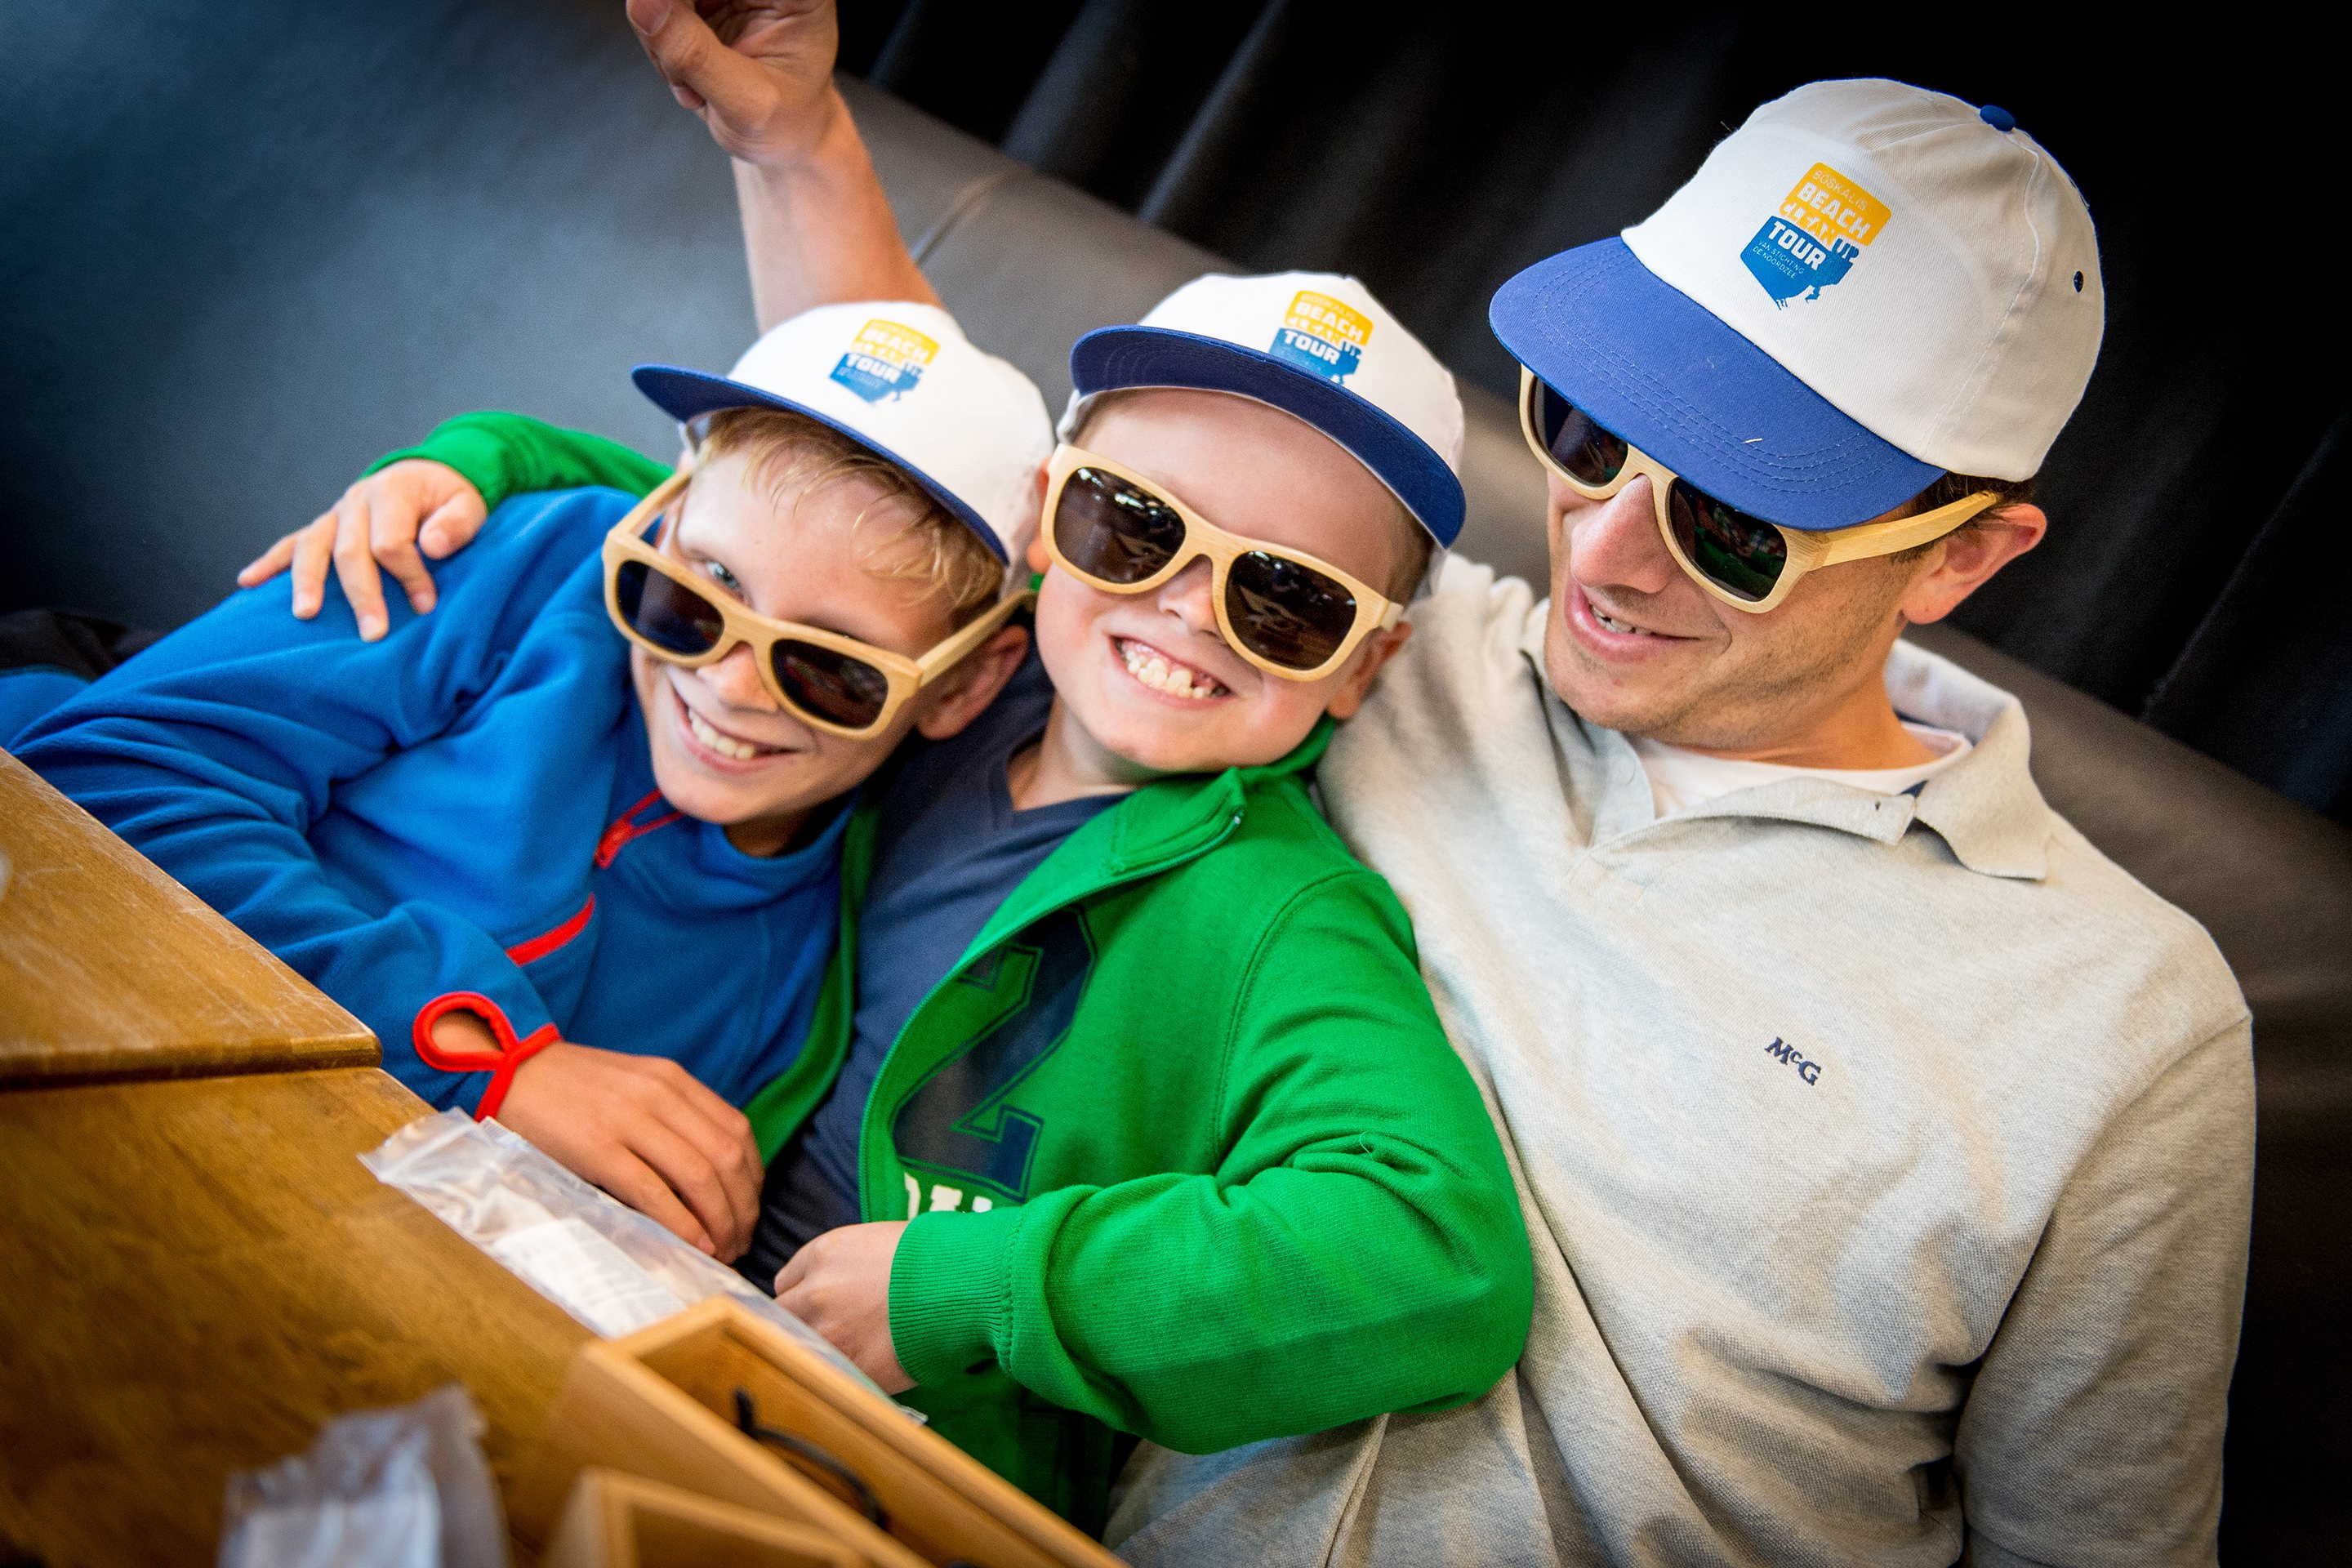 Boskalis family day impressions